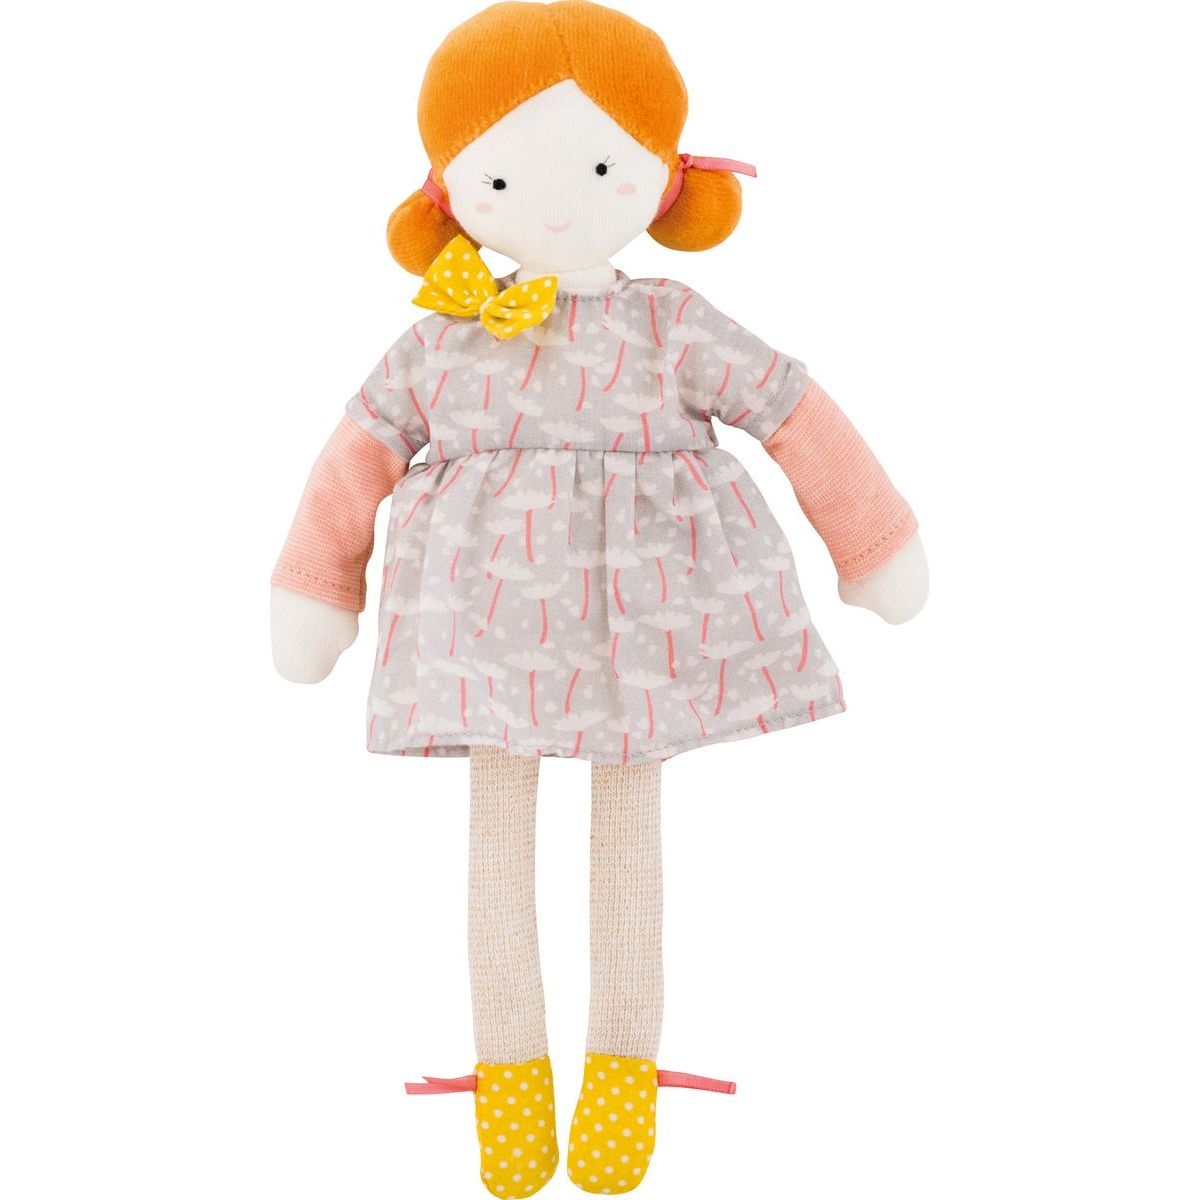 Moulin Roty Mademoiselle Blanche